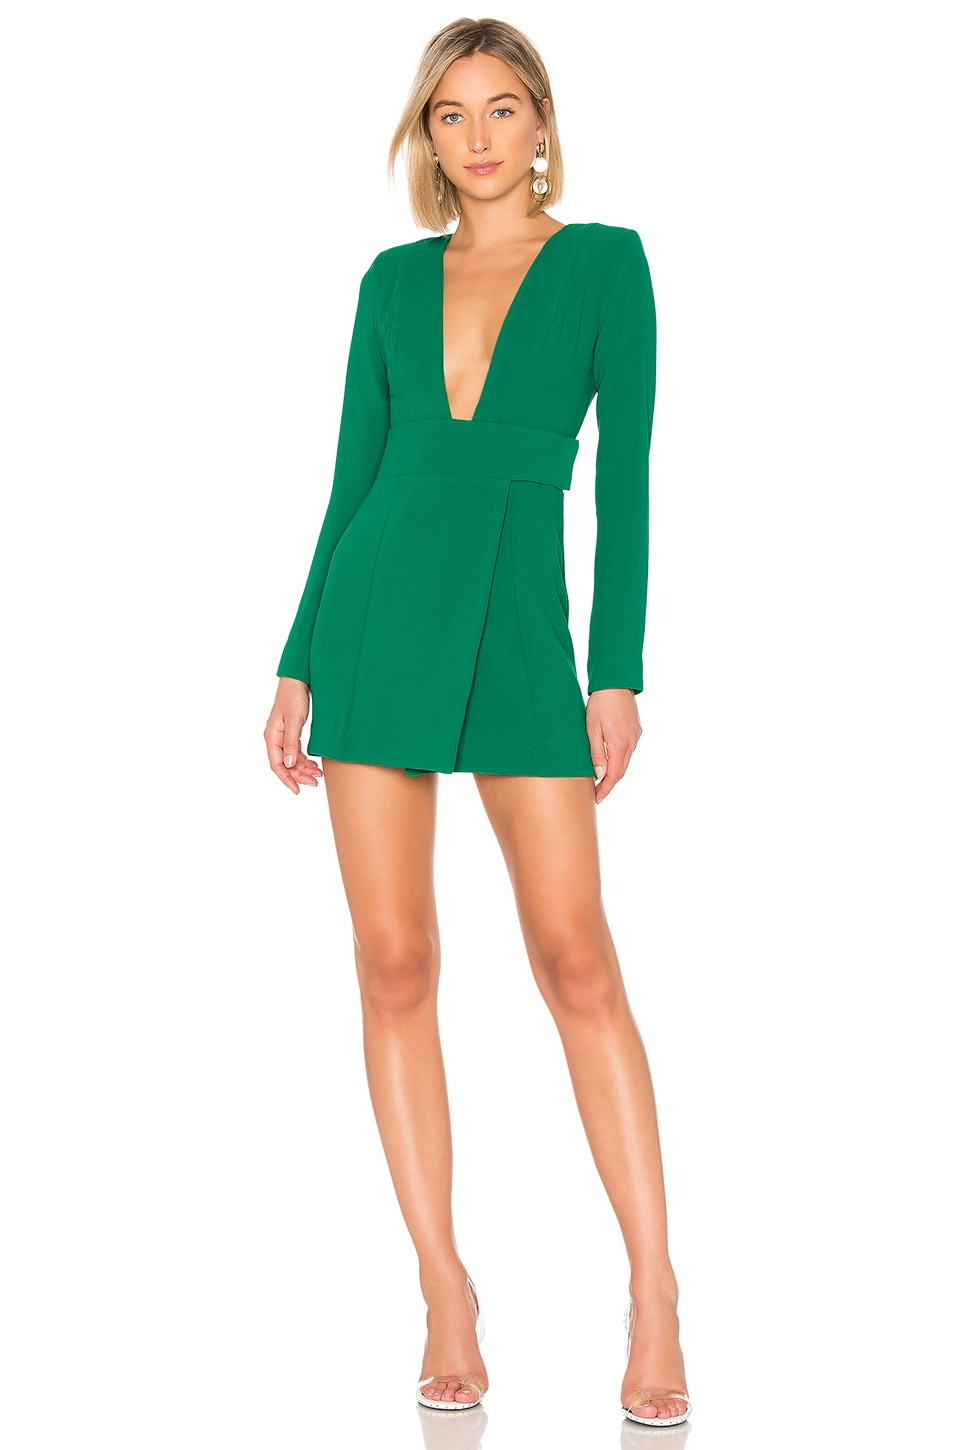 NBD Josiah Mini Dress in Kelly Green